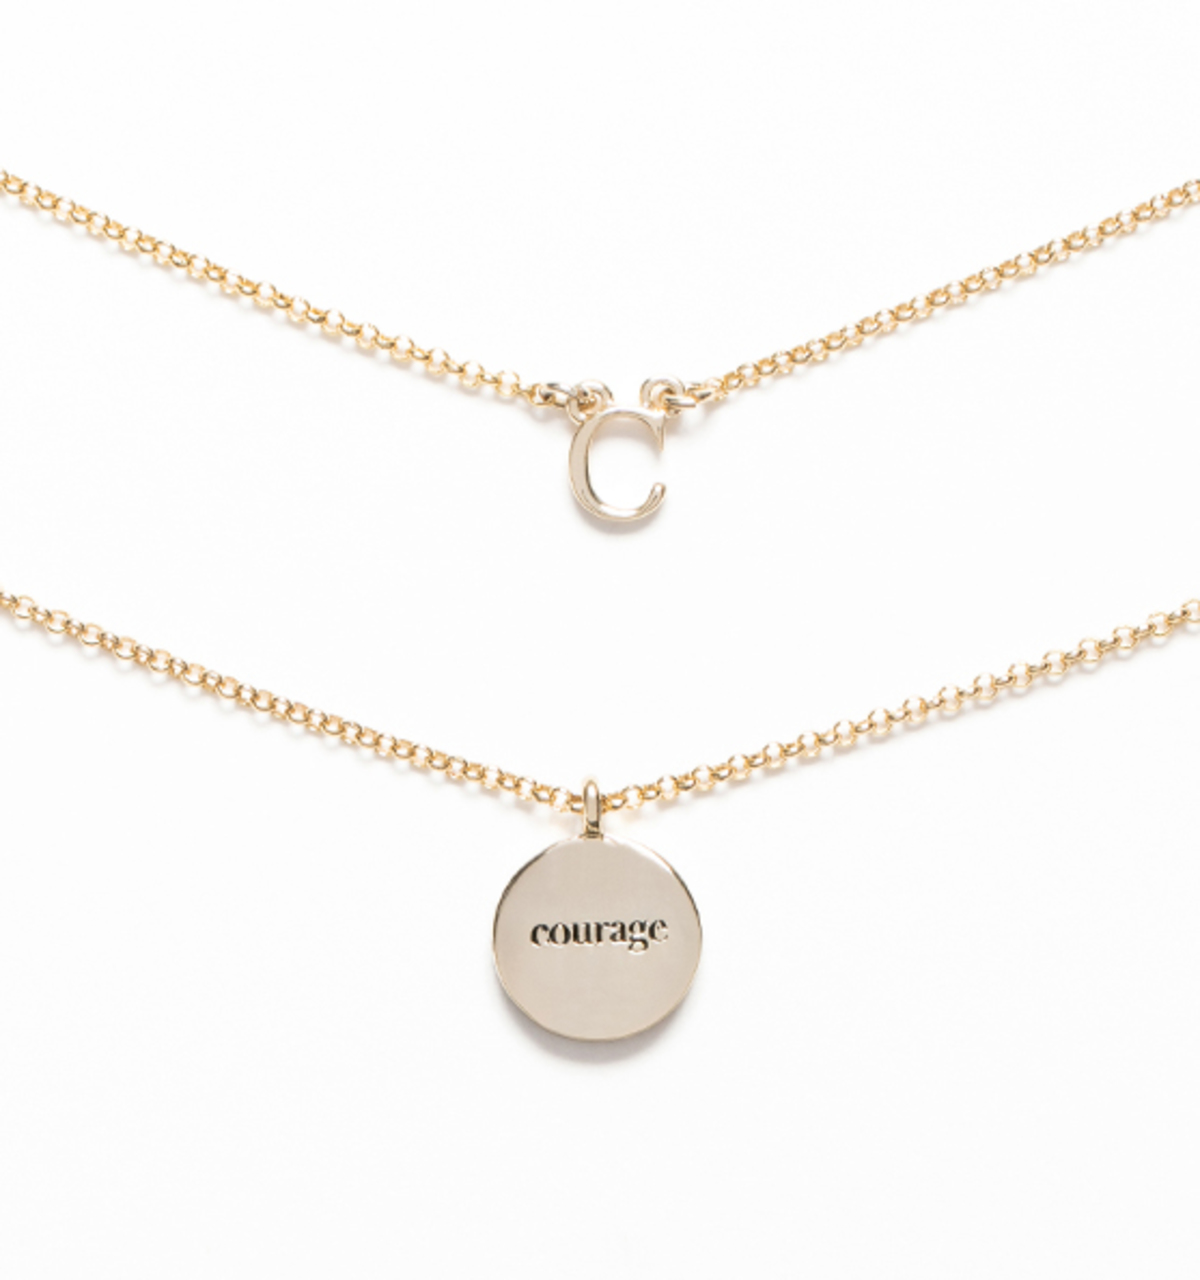 self belief and necklace mantra female jewellery empowerment gold strength courage personalised inspiration